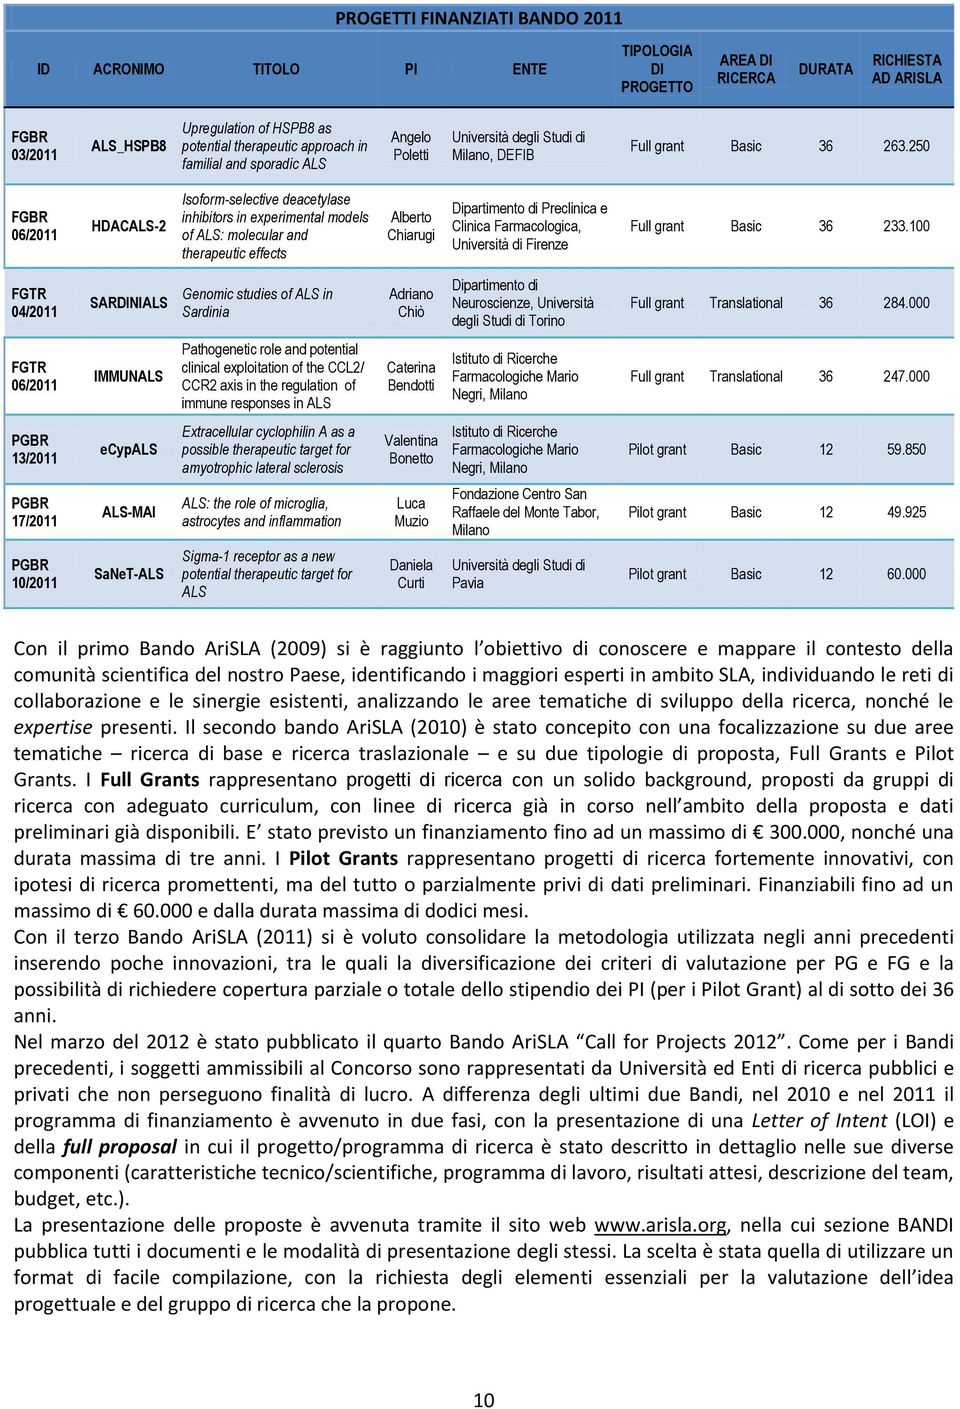 250 FGBR 06/2011 HDACALS-2 Isoform-selective deacetylase inhibitors in experimental models of ALS: molecular and therapeutic effects Alberto Chiarugi Dipartimento di Preclinica e Clinica